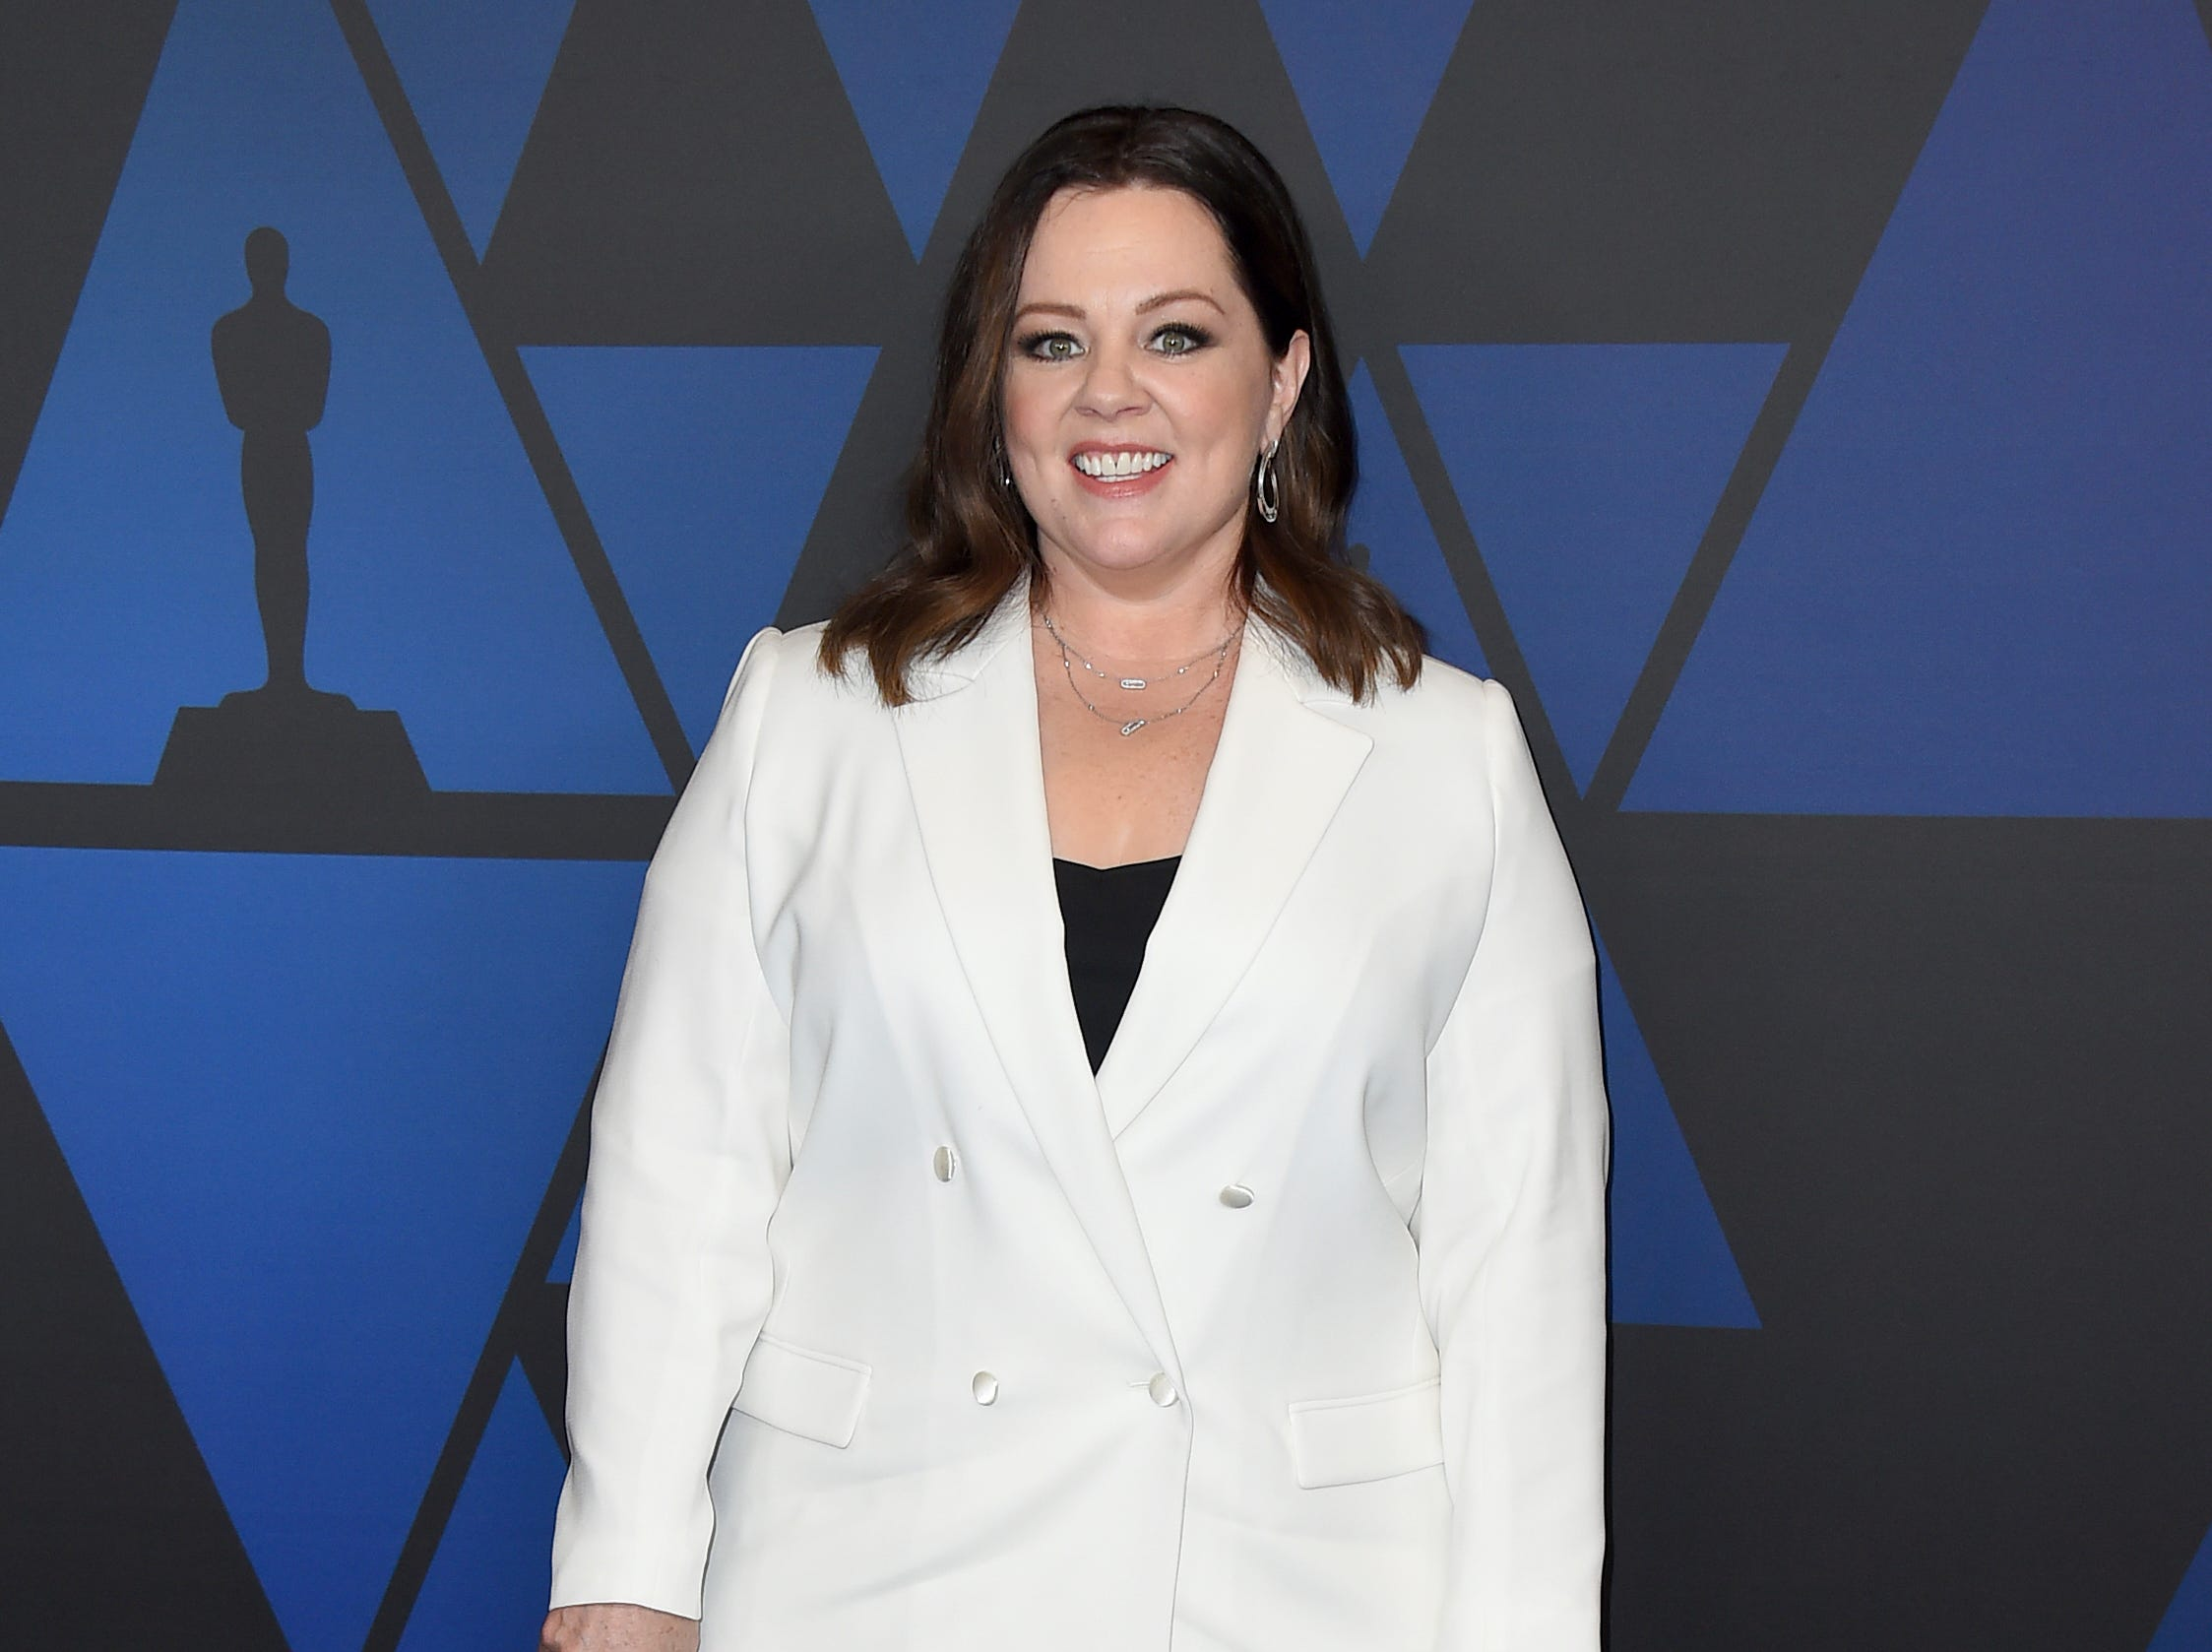 Melissa McCarthy arrives at the Governors Awards on Sunday, Nov. 18, 2018, at the Dolby Theatre in Los Angeles. (Photo by Jordan Strauss/Invision/AP) ORG XMIT: CAPM171